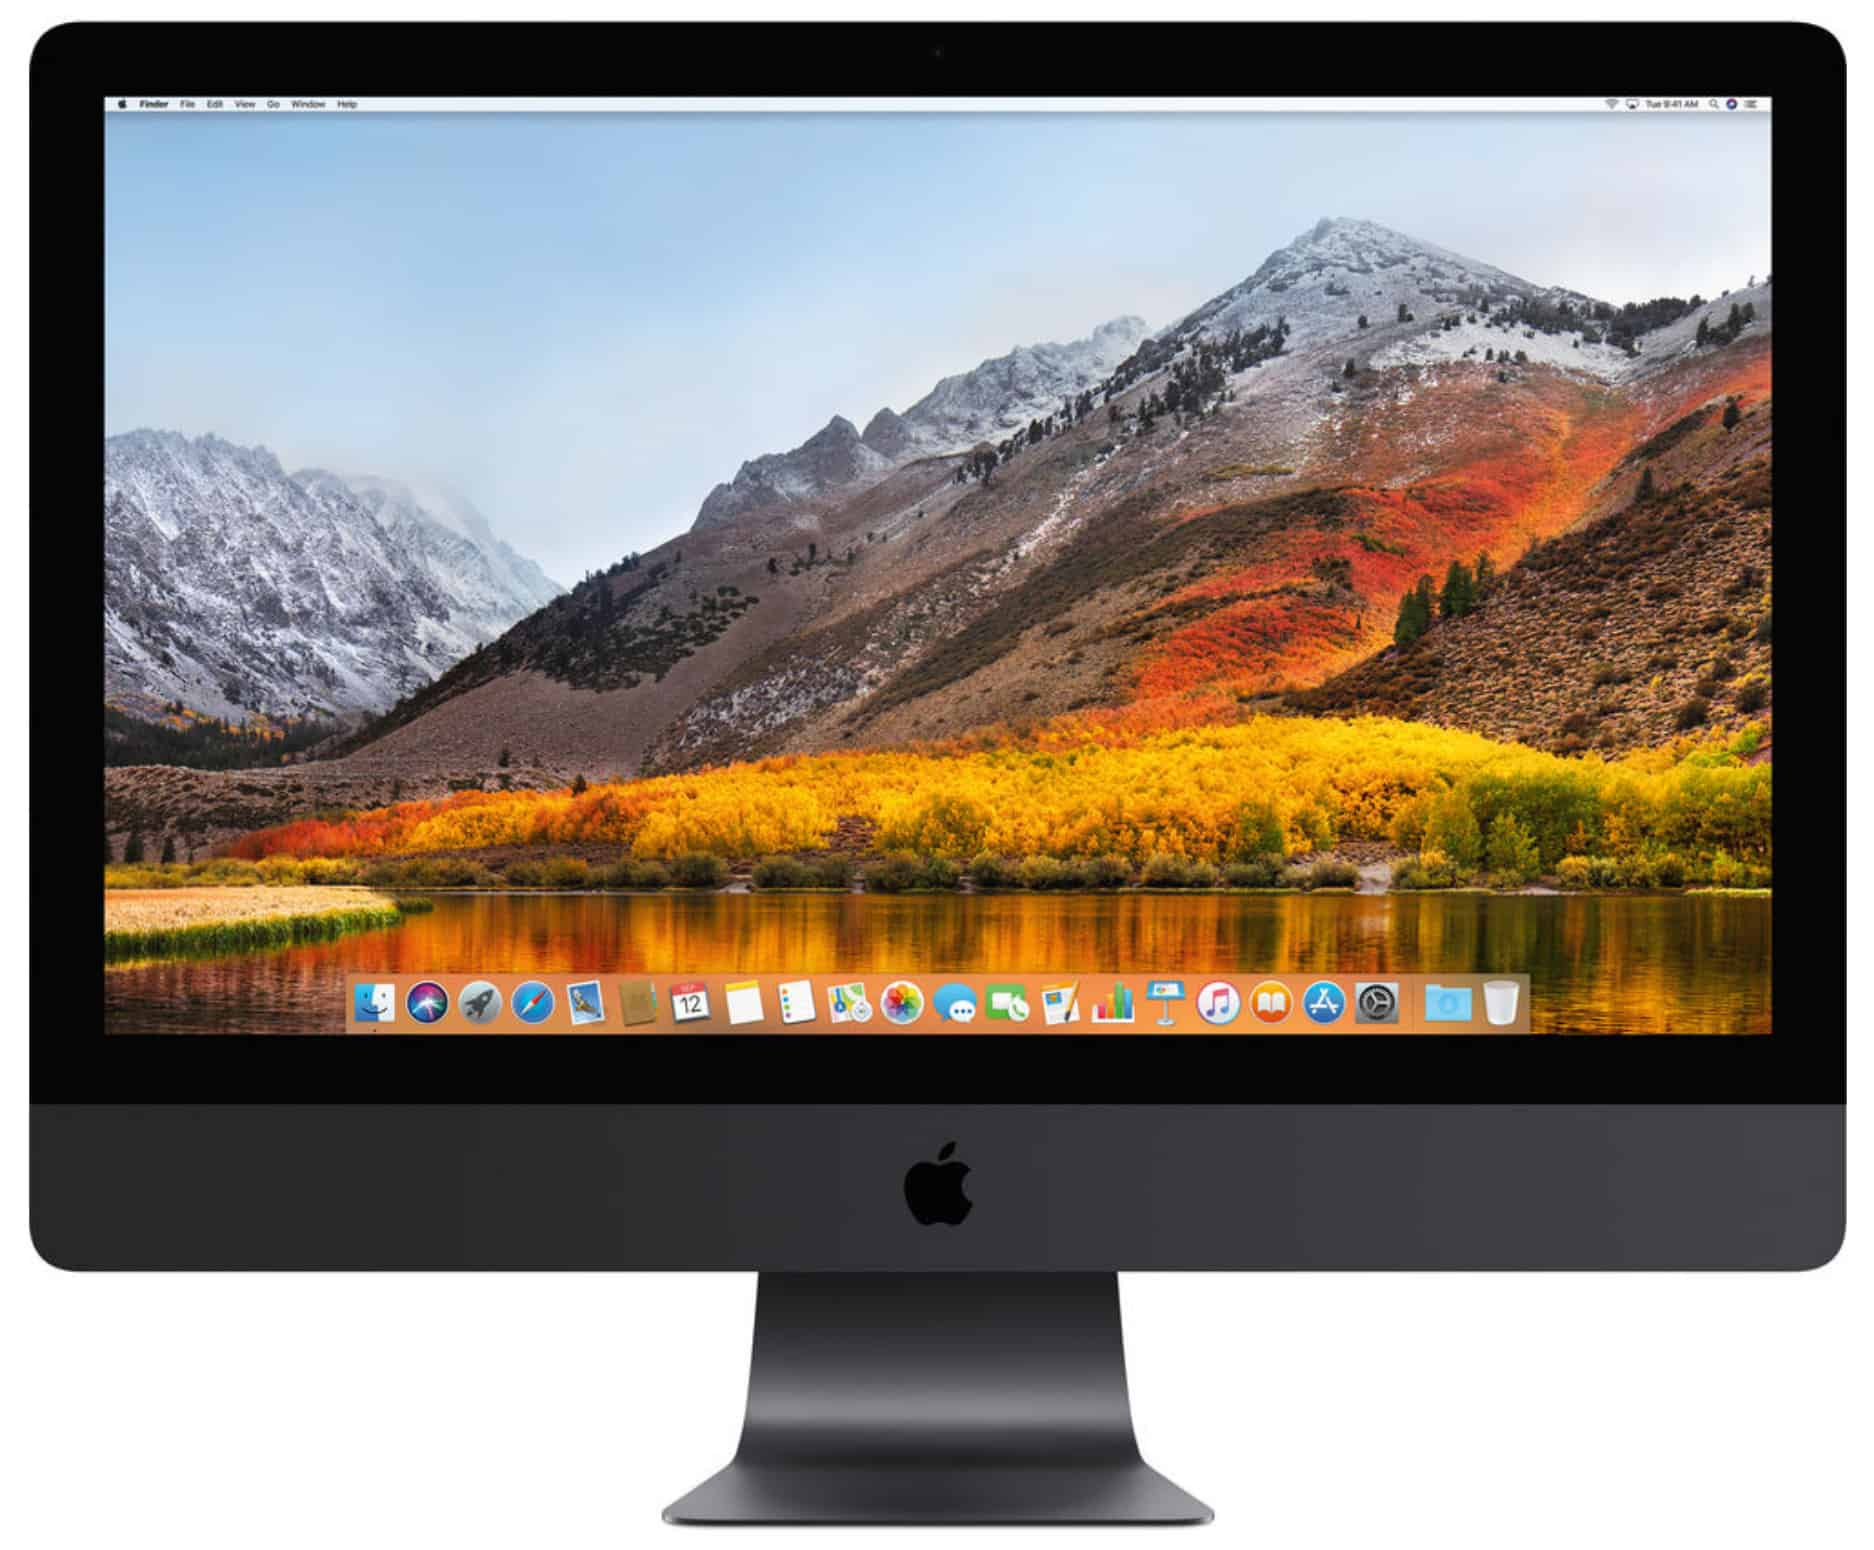 A surprising discount on the new iMac Pro is just one of this week's great Apple deals.